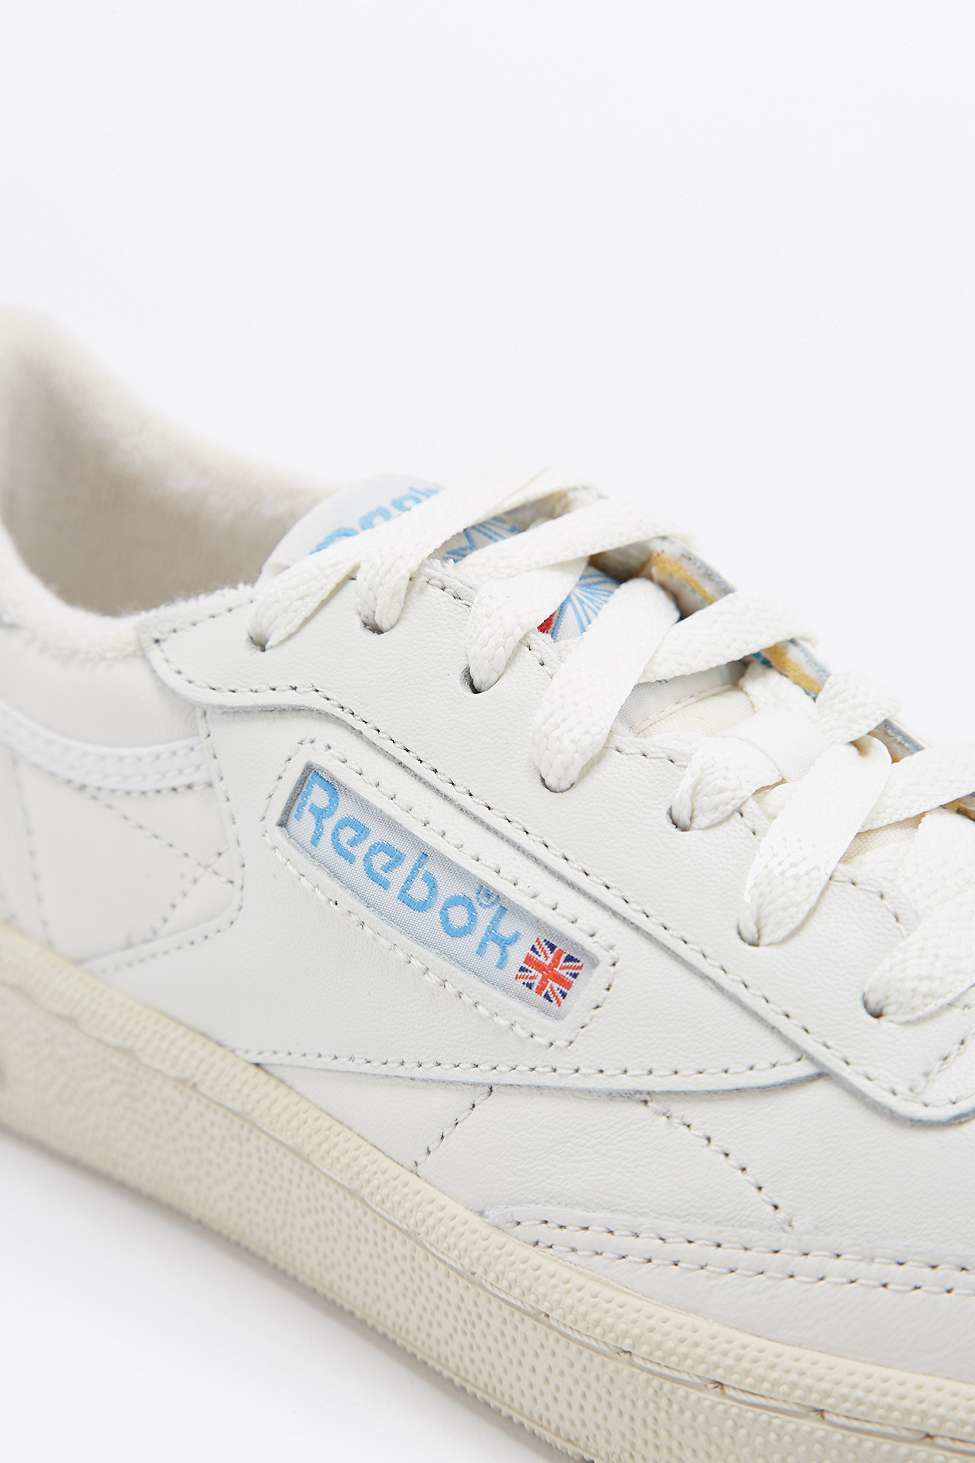 2eda584a47aa9 Reebok Club C 85 Vintage White Trainers in White for Men - Lyst